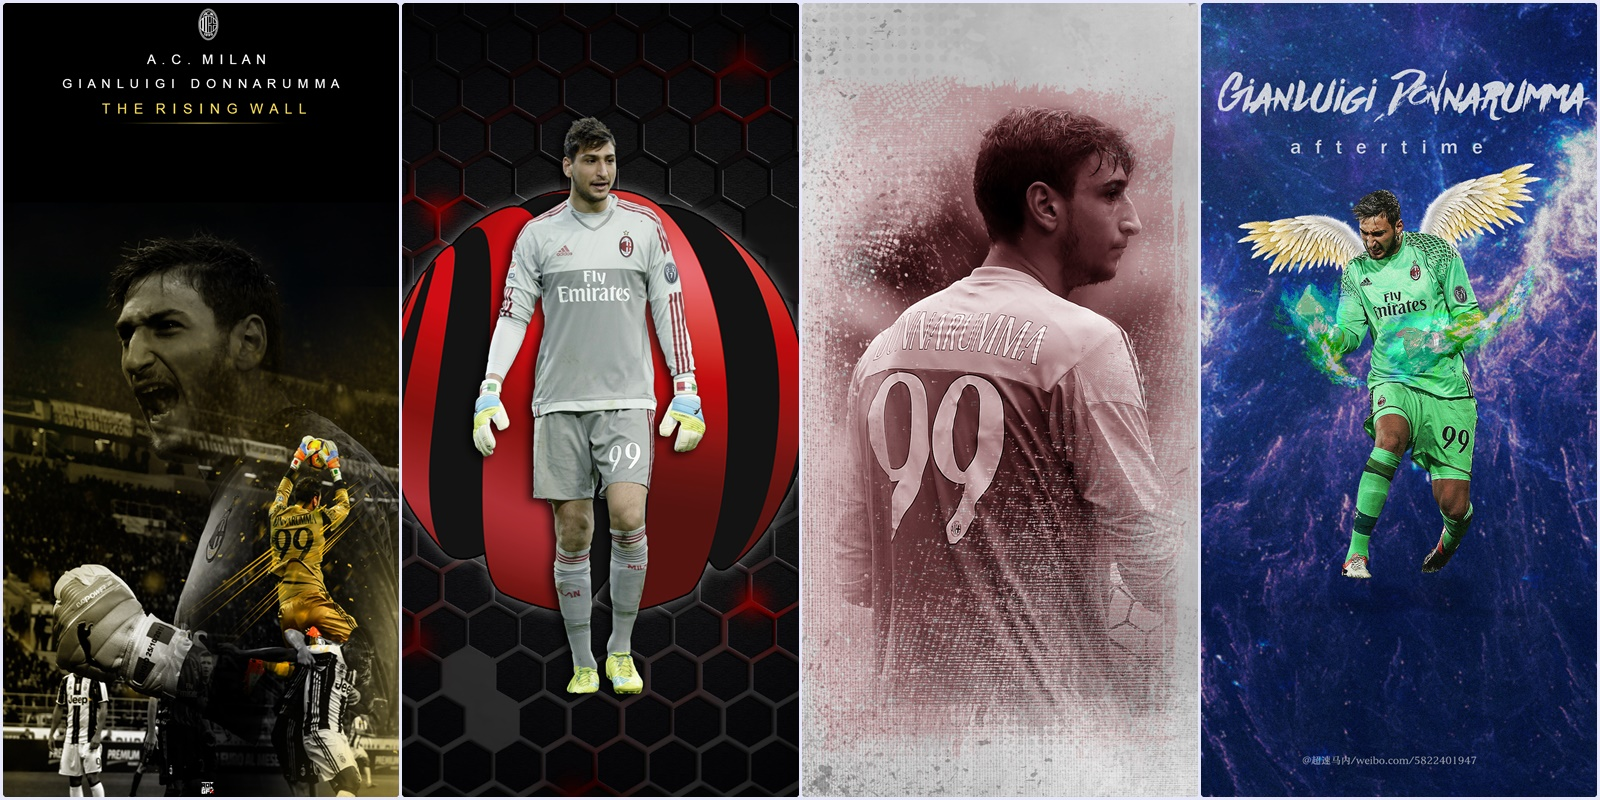 Image Result For Gianluigi Donnarumma Wikipedia